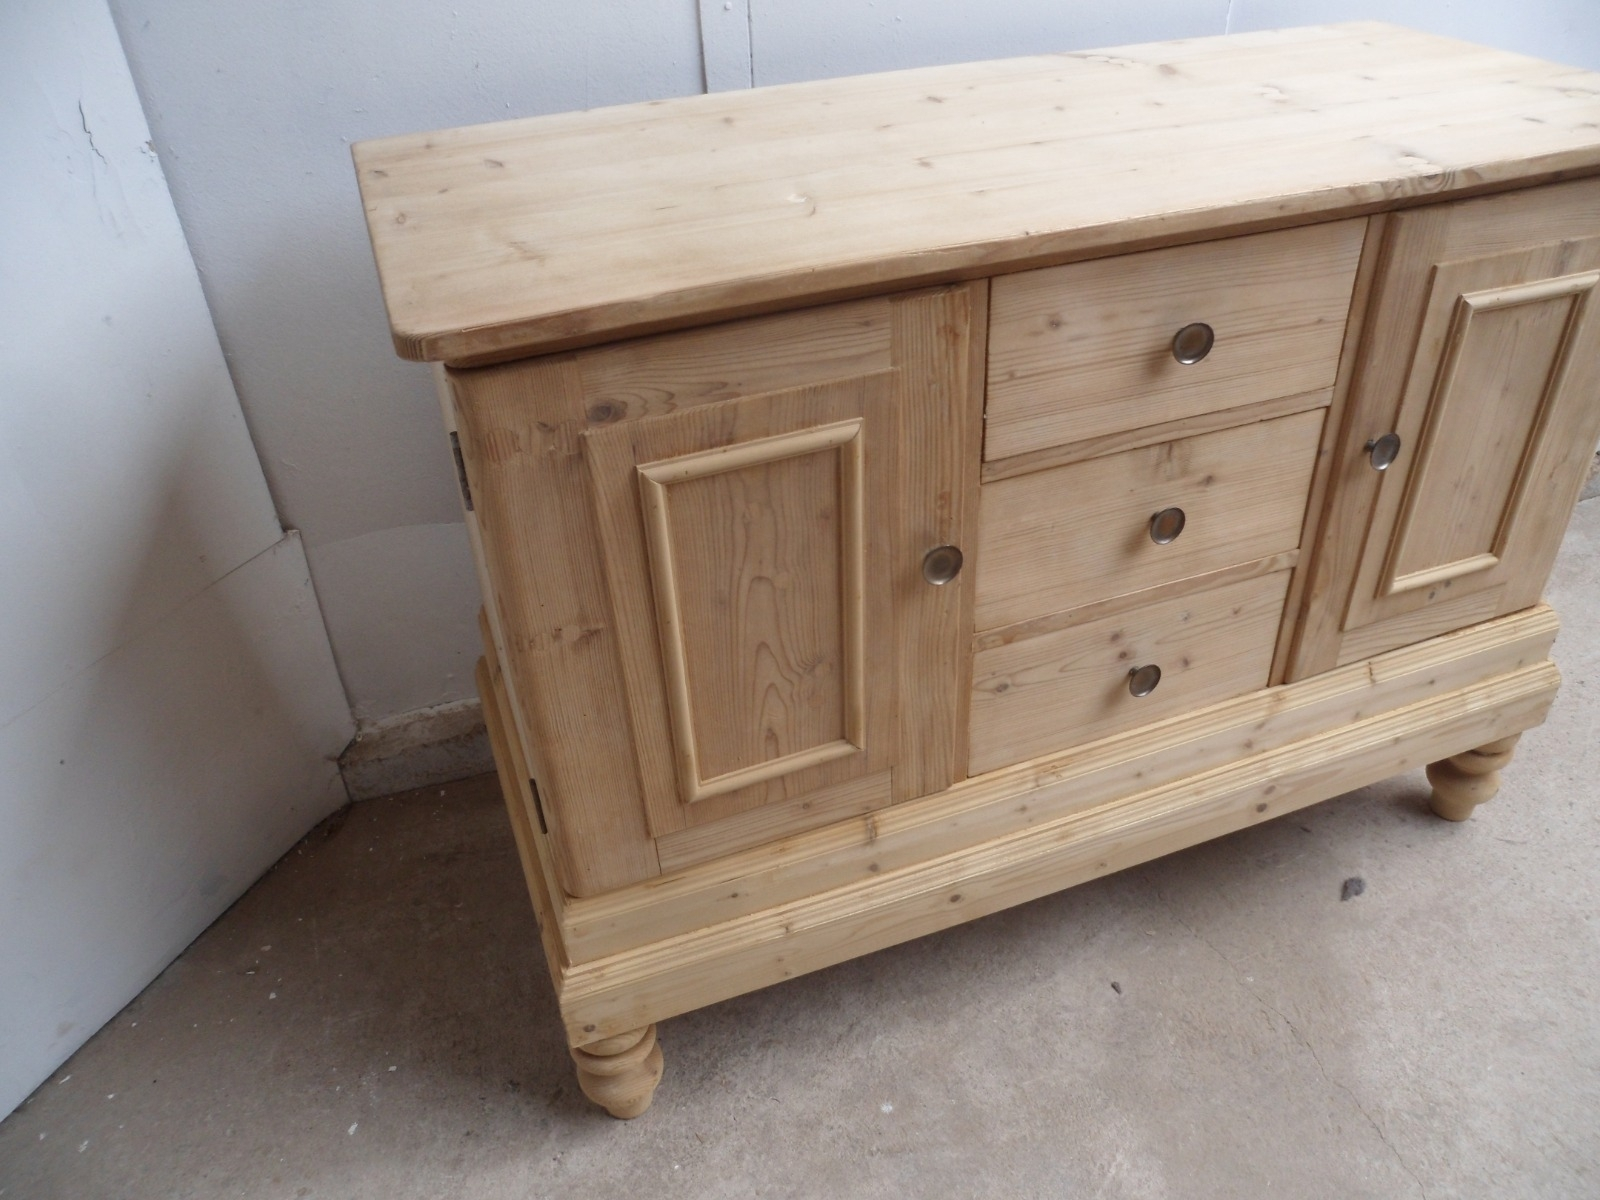 Lovely Old Pine 2 Door 3 Drawer Kitchen Dresser Base To Wax / Paint For Current Aged Pine 3 Drawer 2 Door Sideboards (#12 of 20)